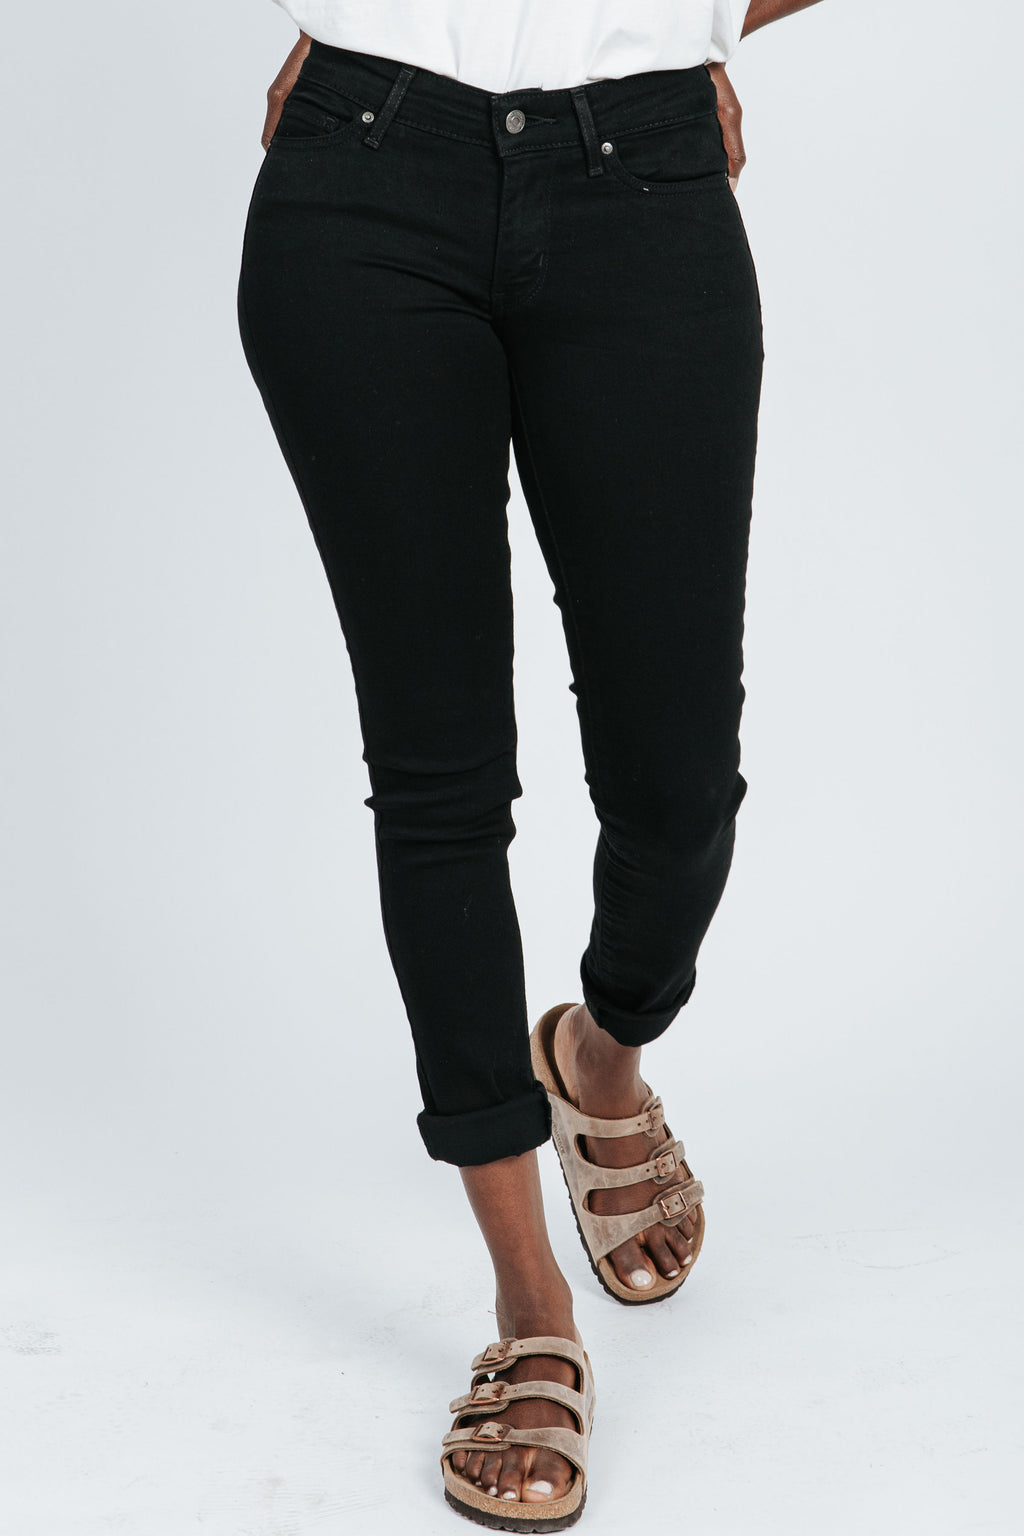 Levi's: 711 Skinny Jeans in Soft Black, studio shoot; front view